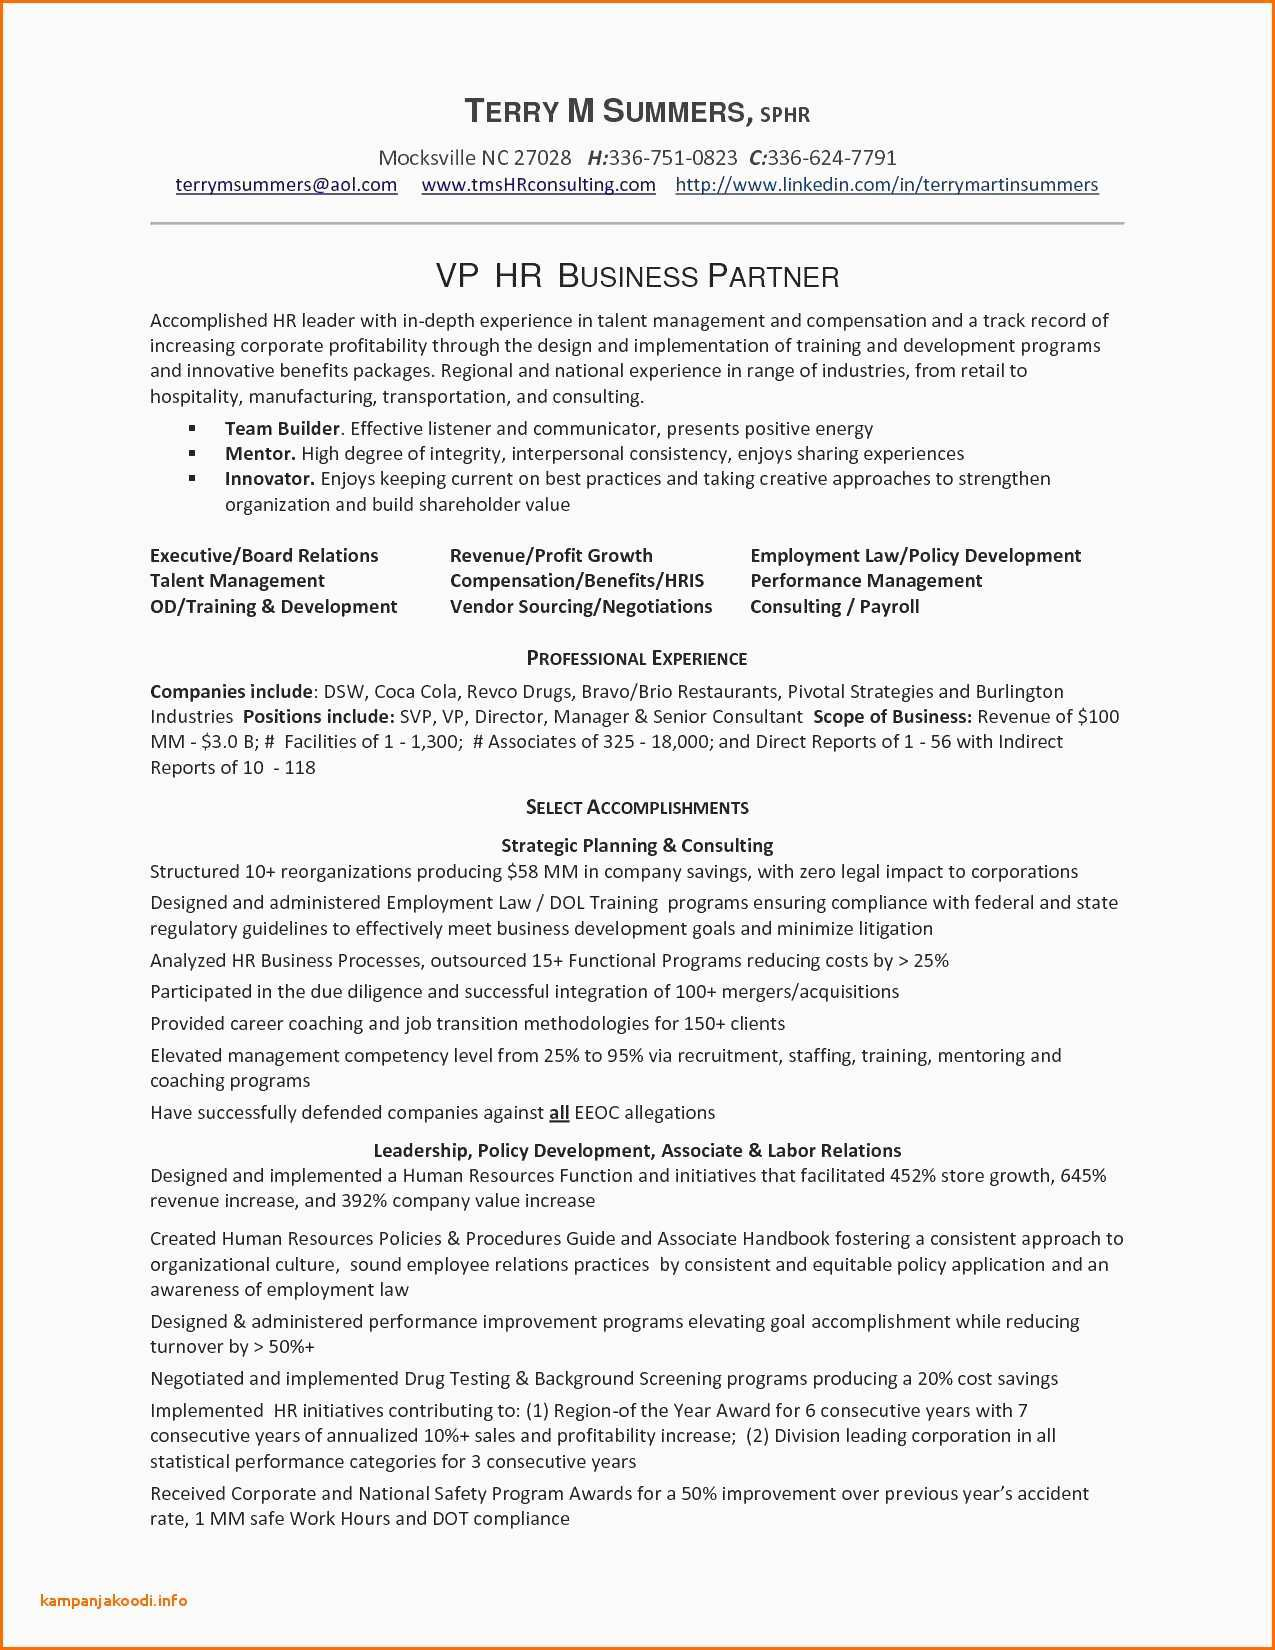 Police Officer Resume Template - Police Verification Letter format for Job Employment Verification